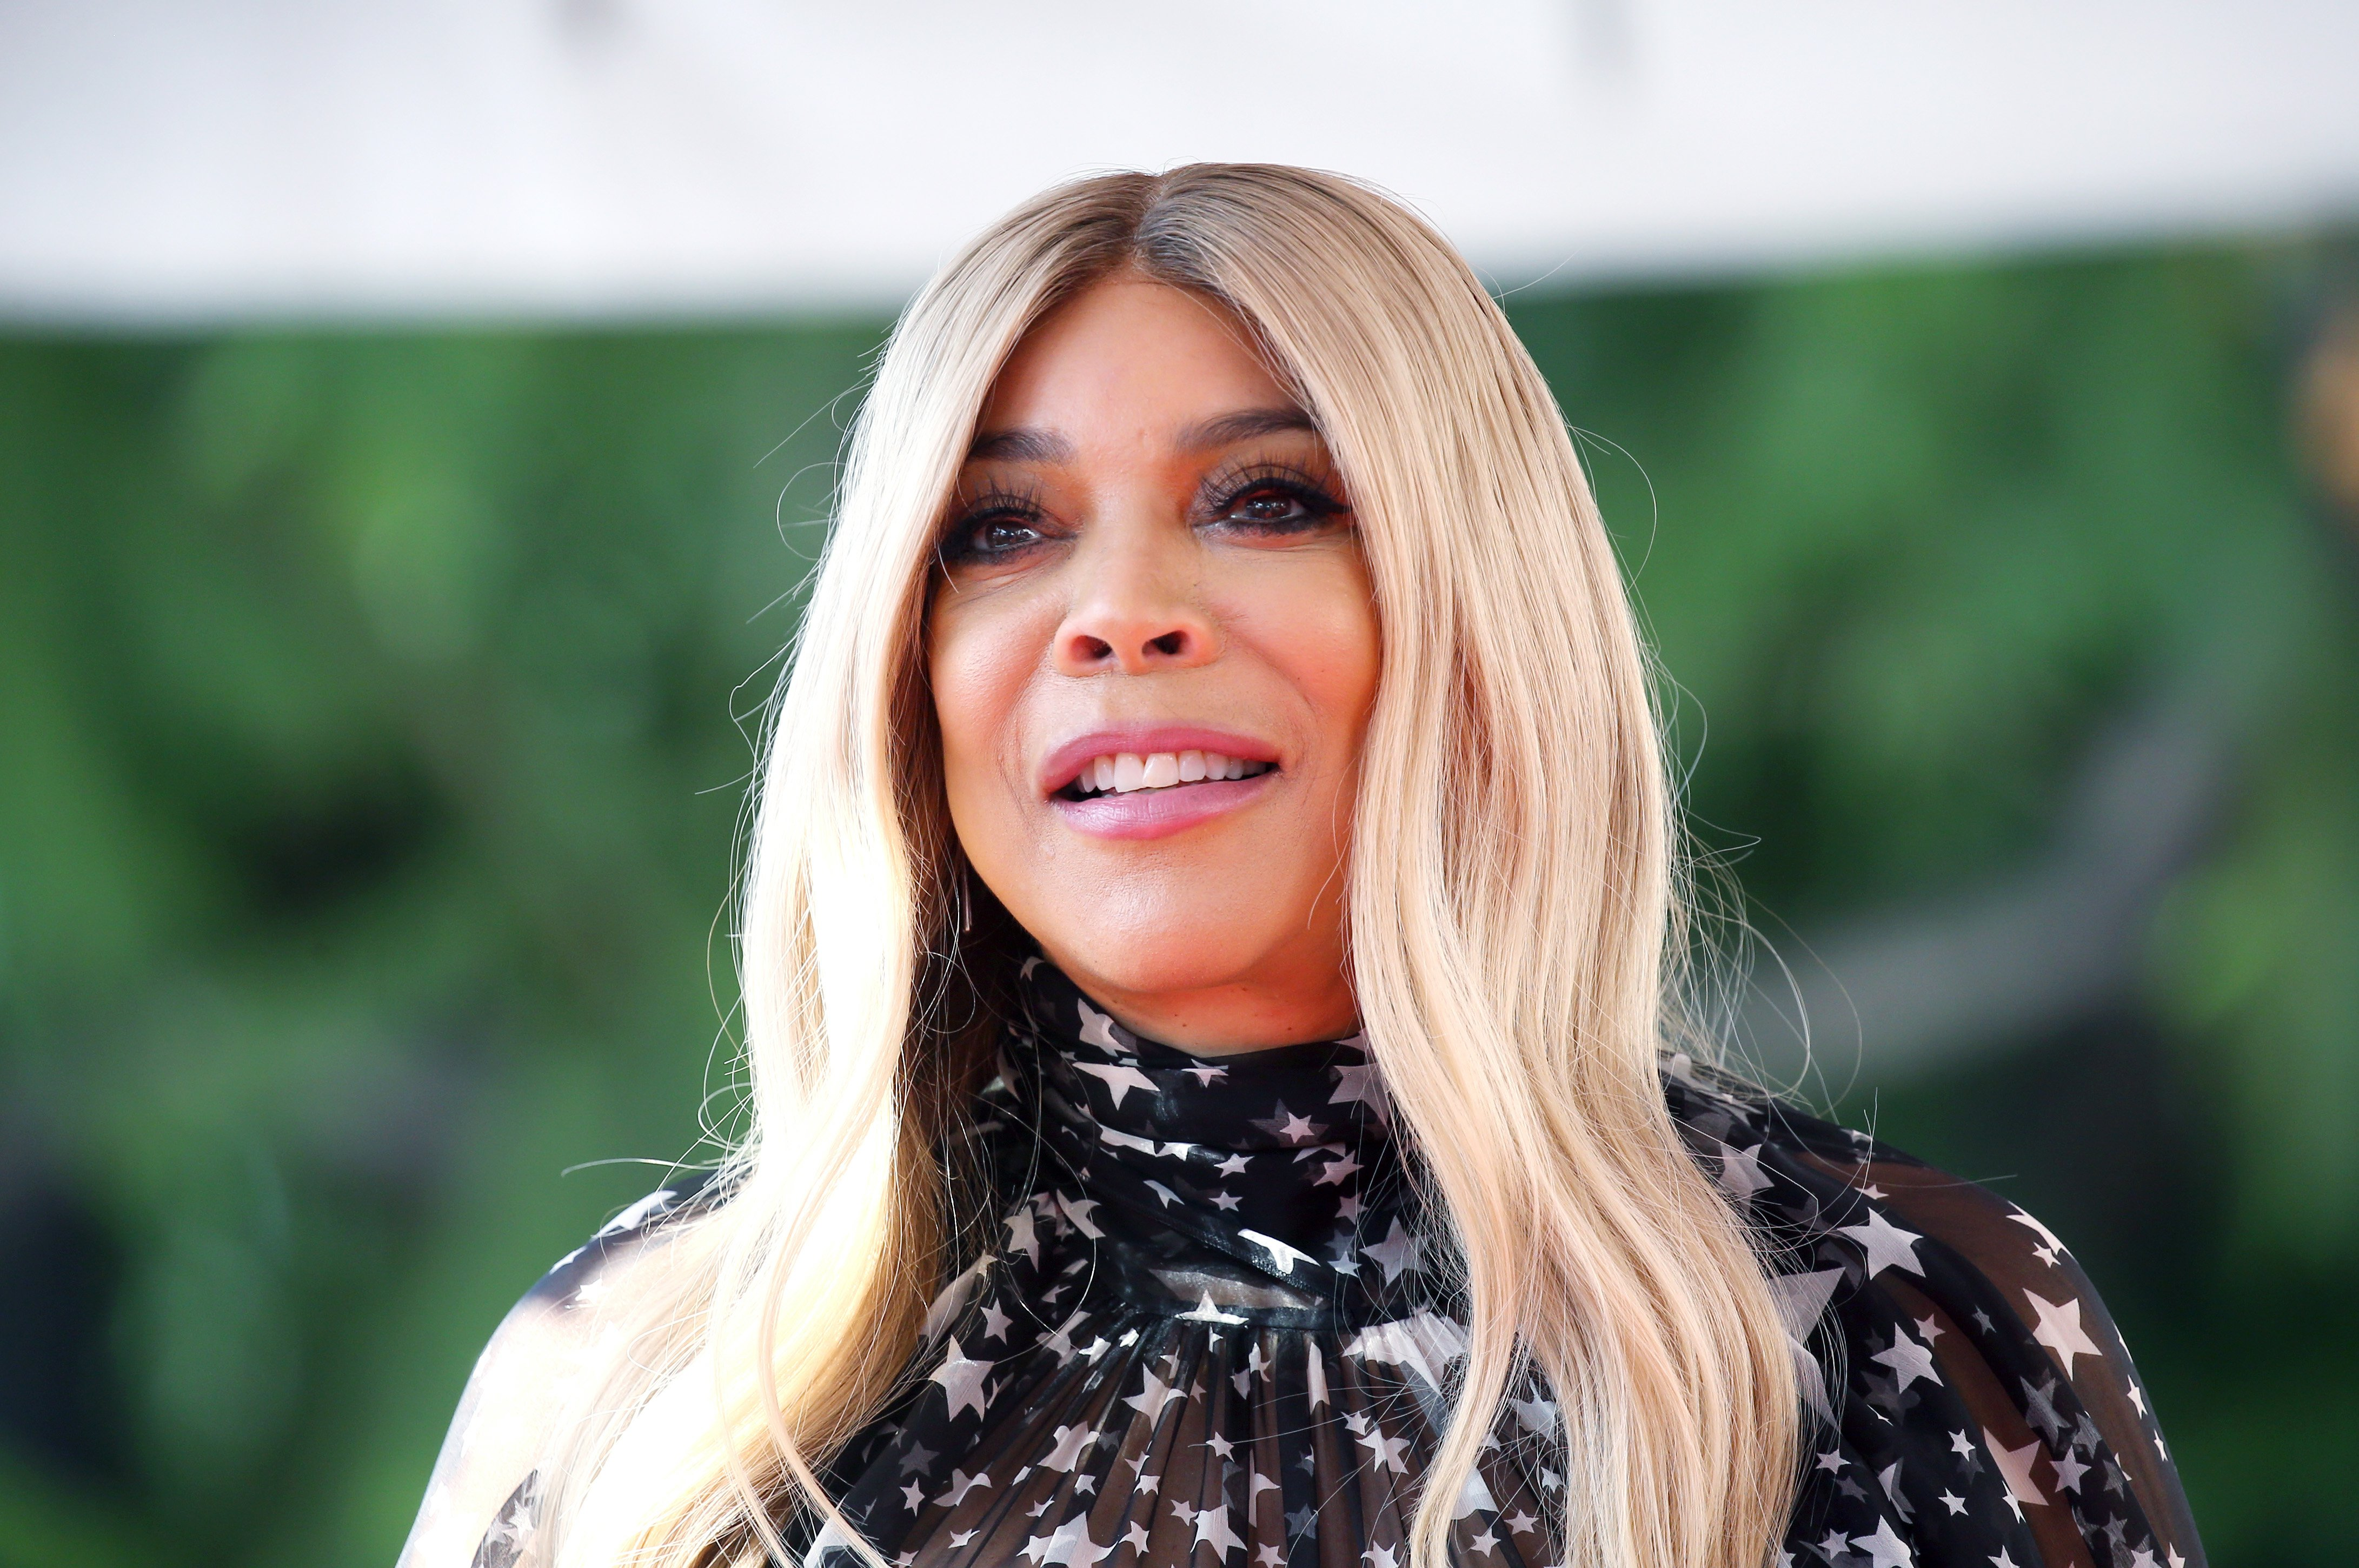 Wendy Williams at the ceremony honoring her with a star on The Hollywood Walk of Fame held in Hollywood, California on October 17, 2019. | Photo: Getty Images